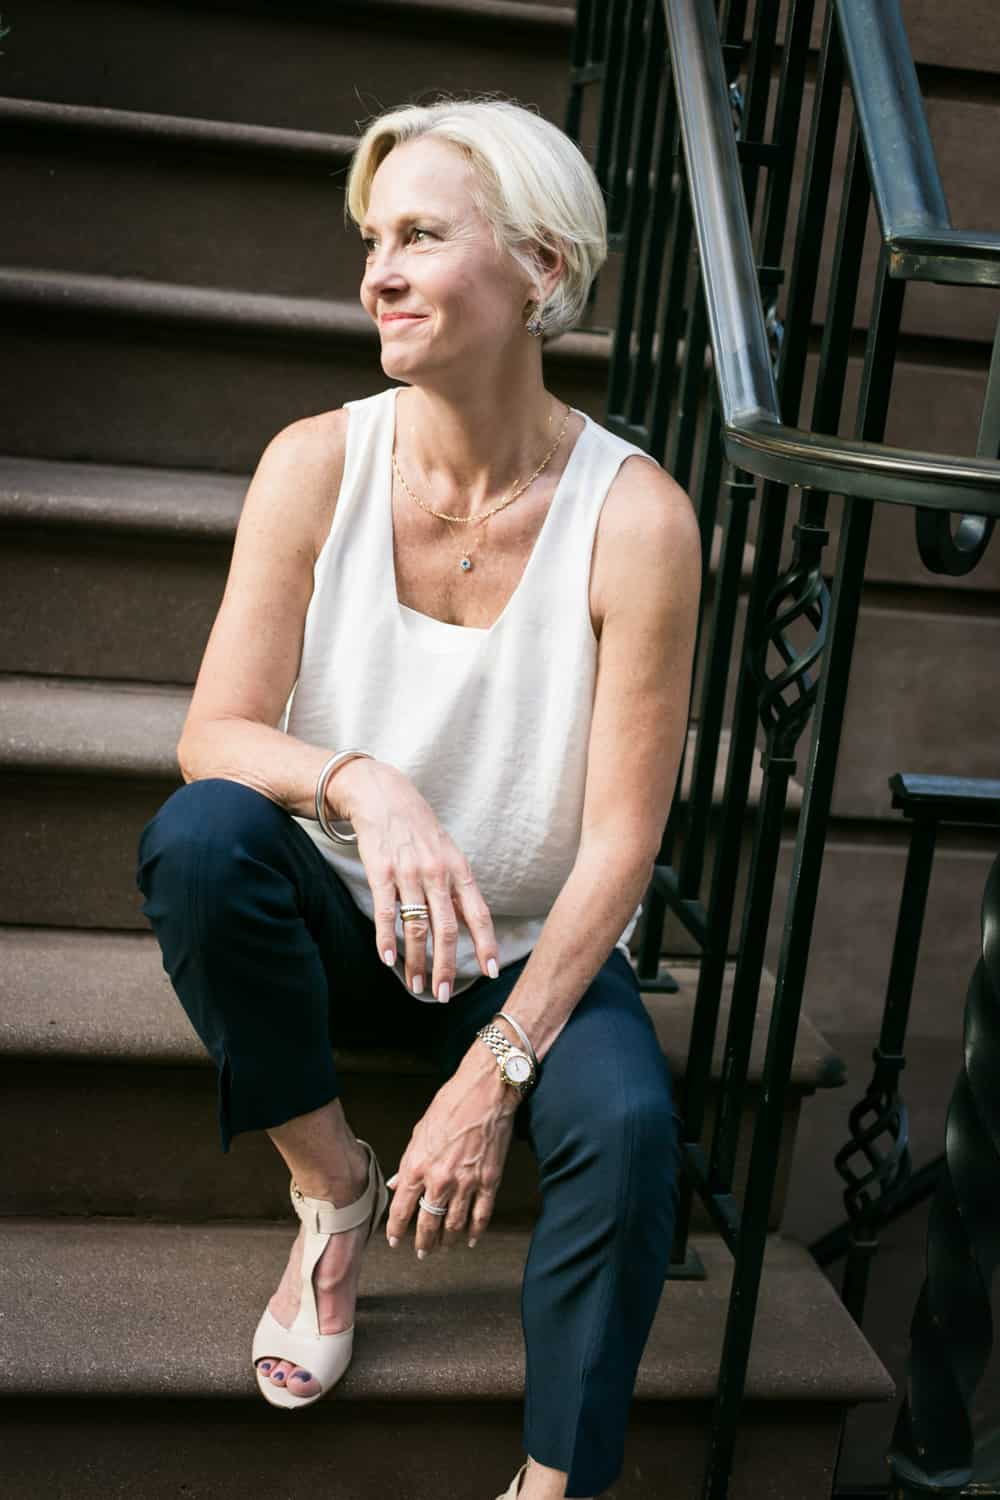 Older woman wearing white sleeveless top sitting on steps